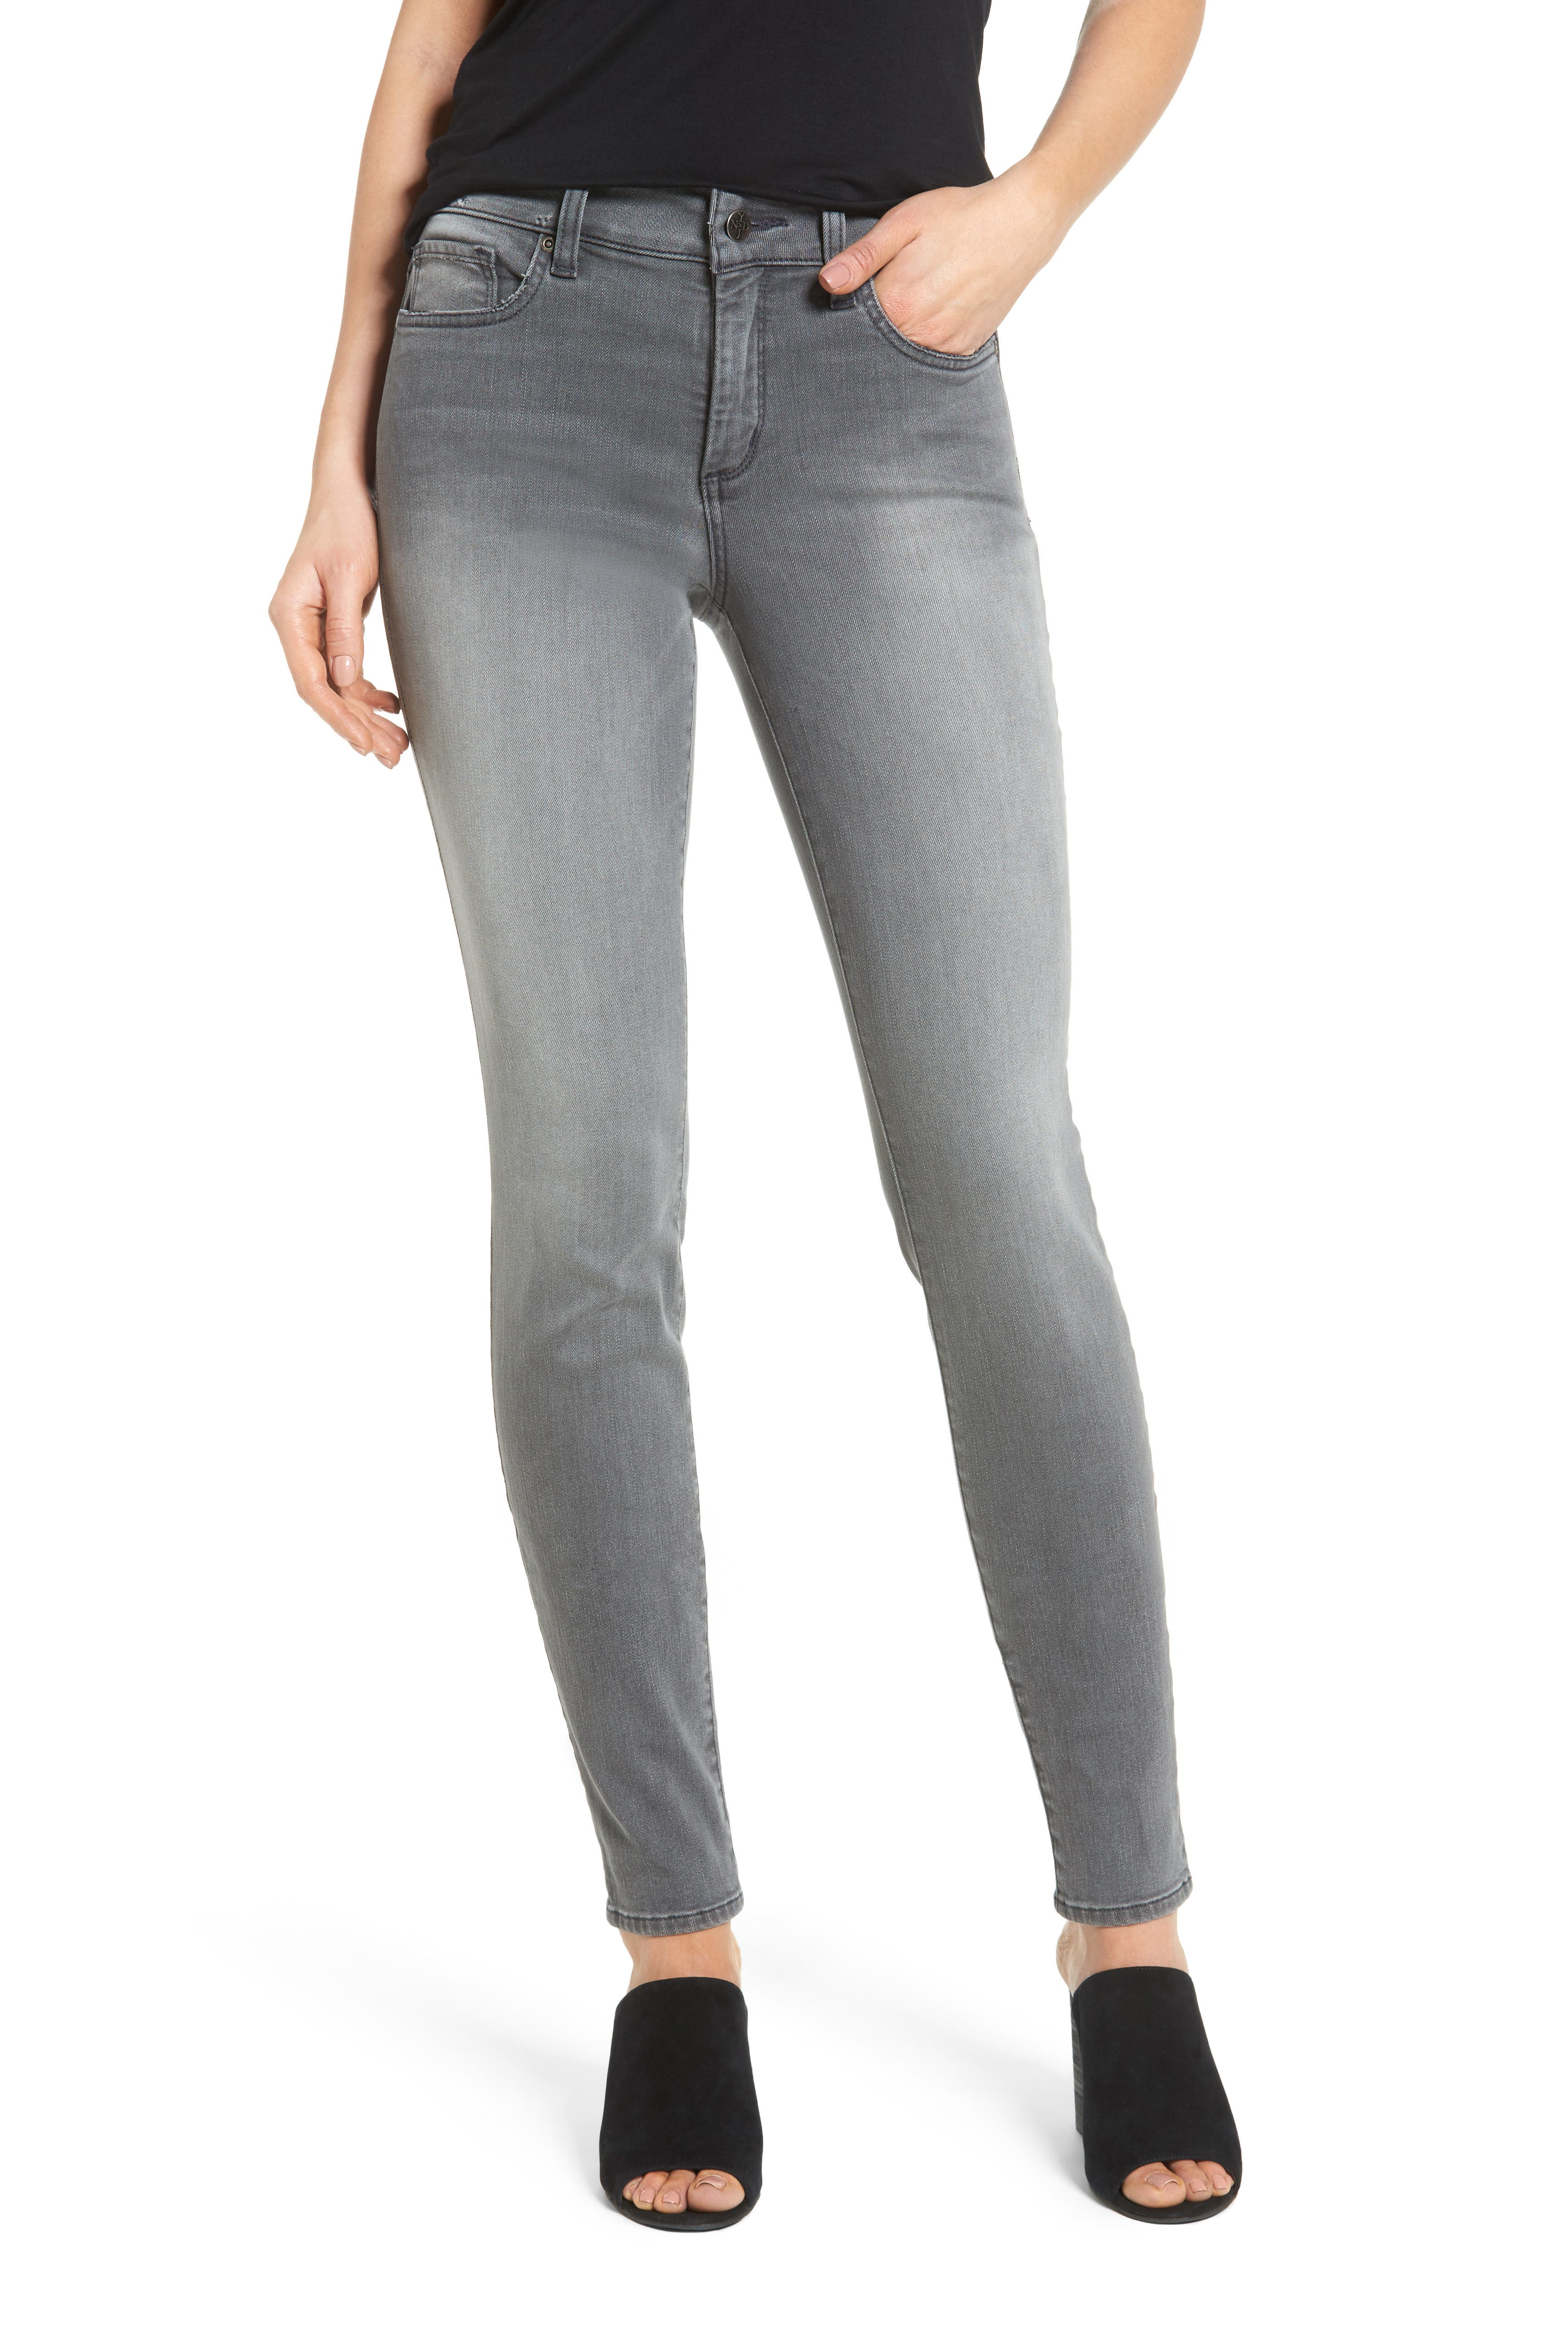 Ami Stretch Skinny Jeans,                         Main,                         color, 035